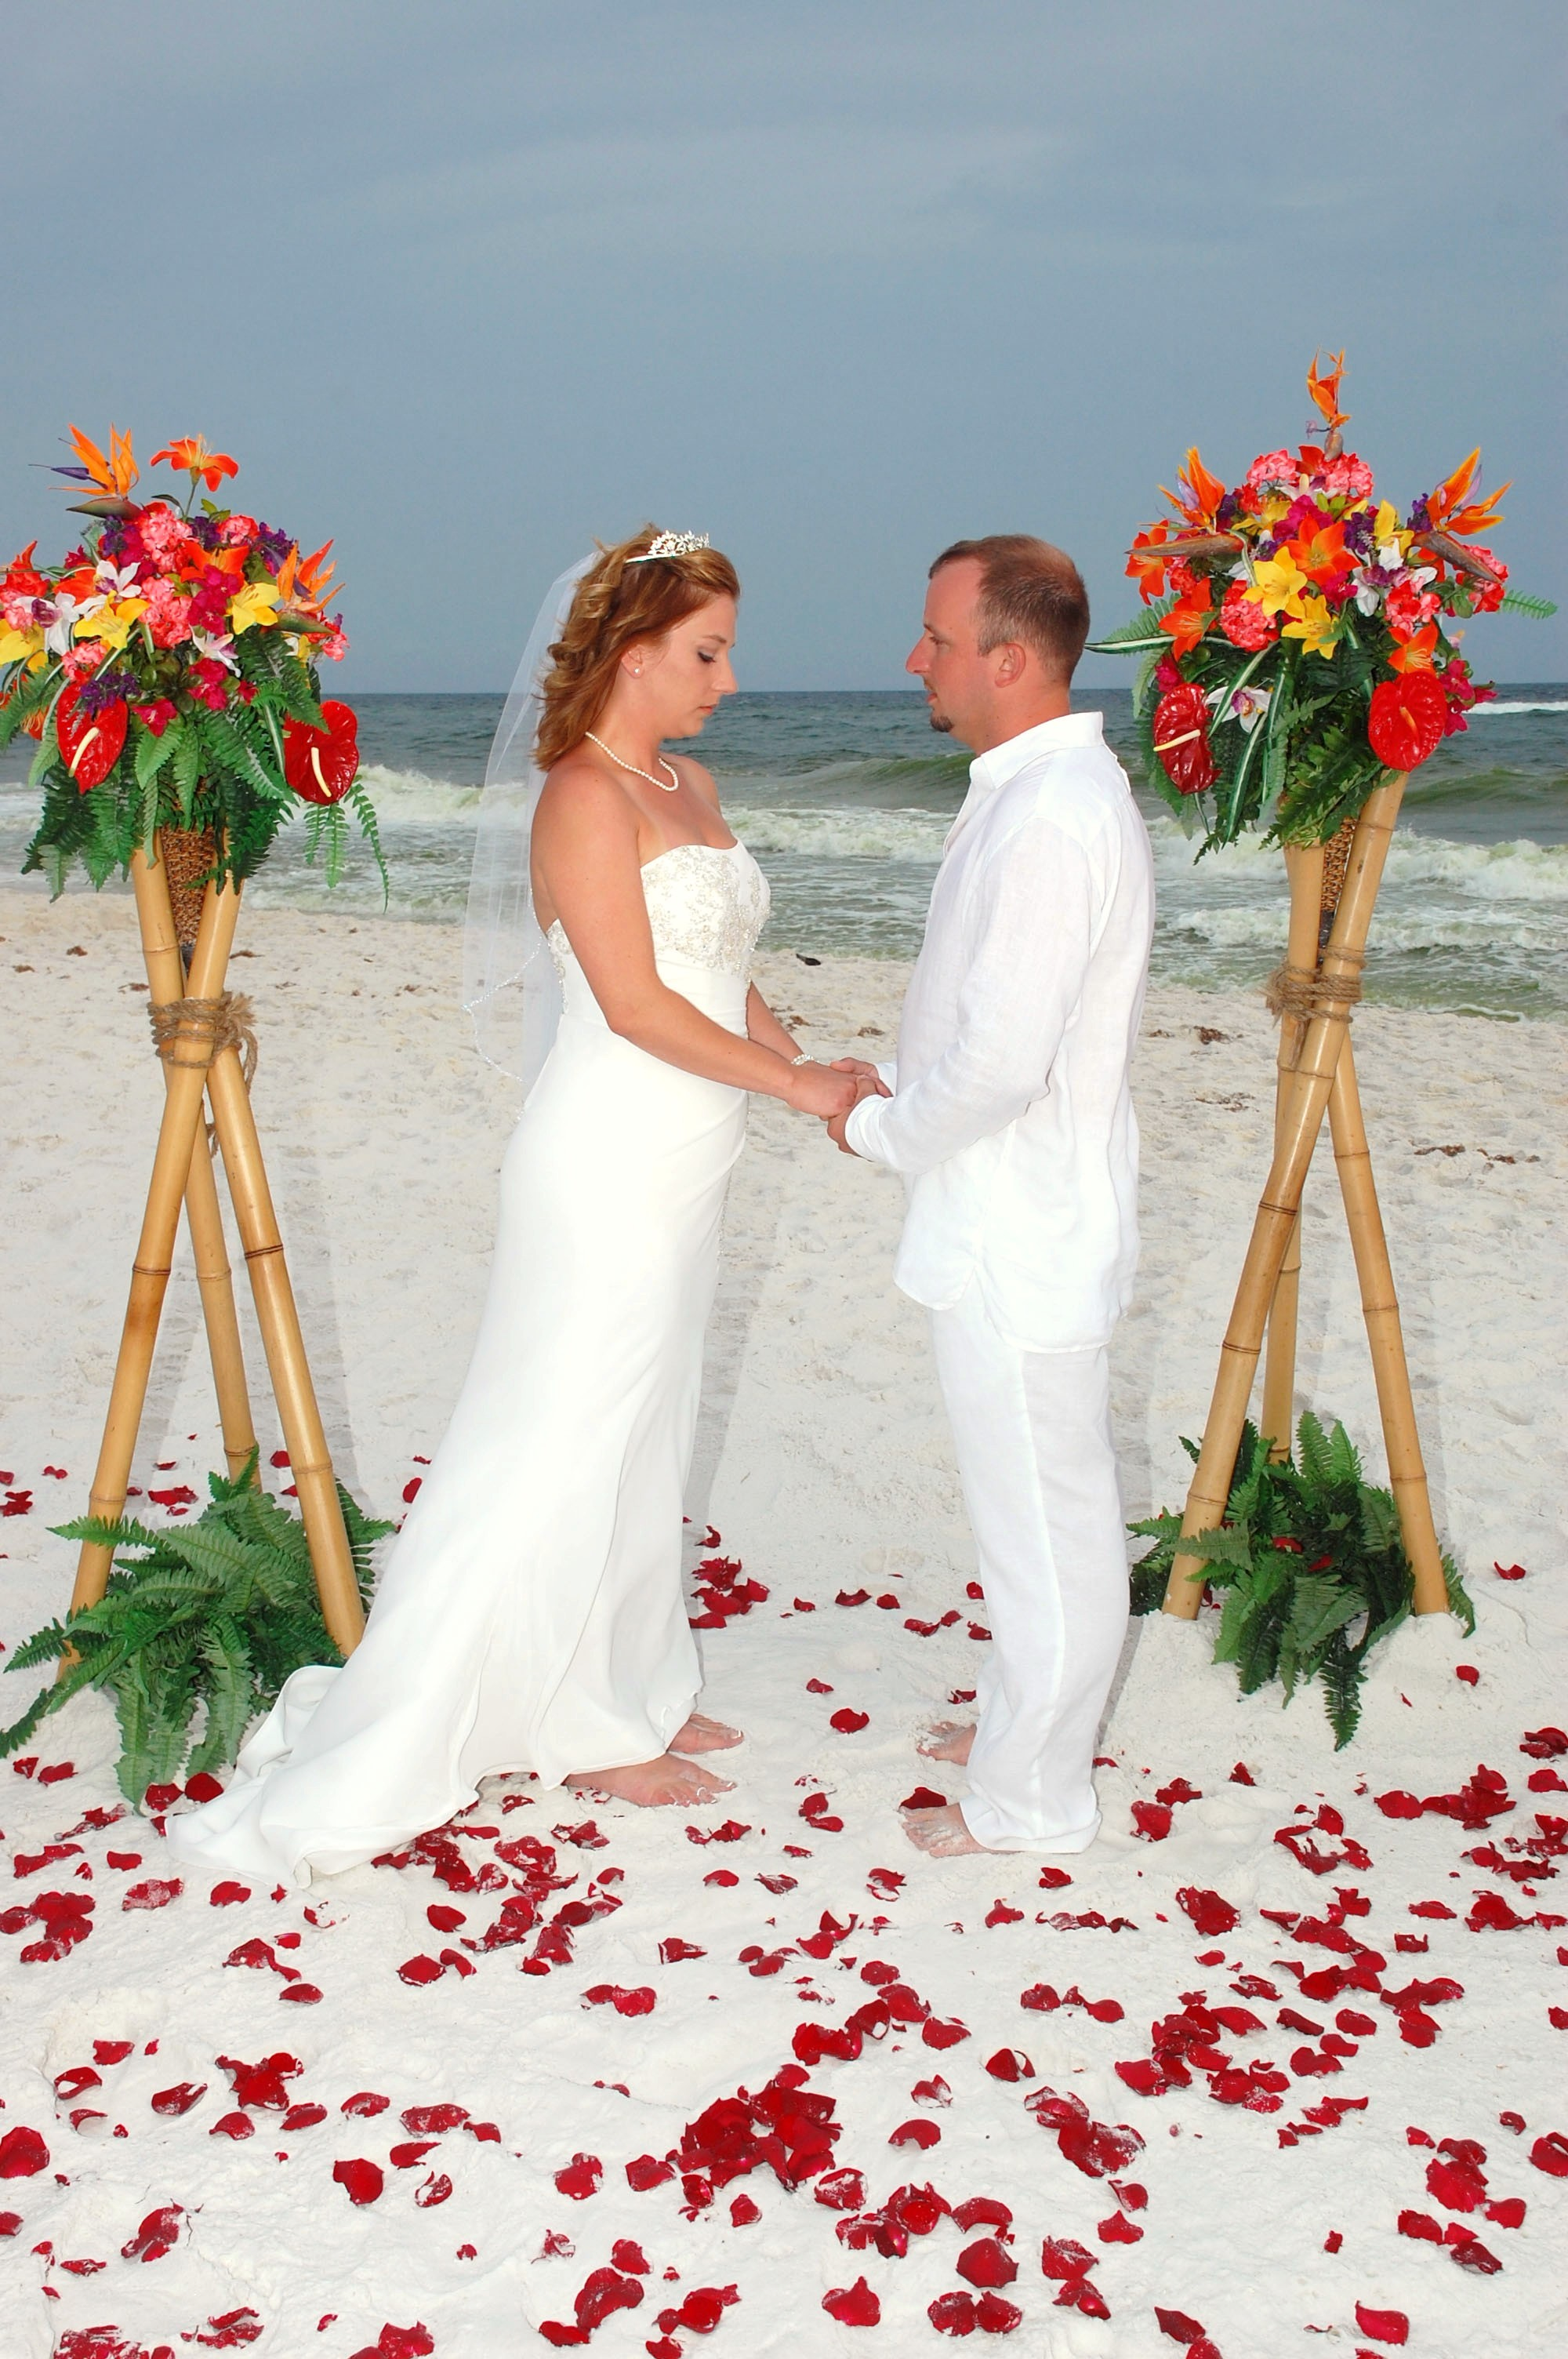 Barefoot Weddings® Blog | Barefoot Weddings- Beach Weddings in ...